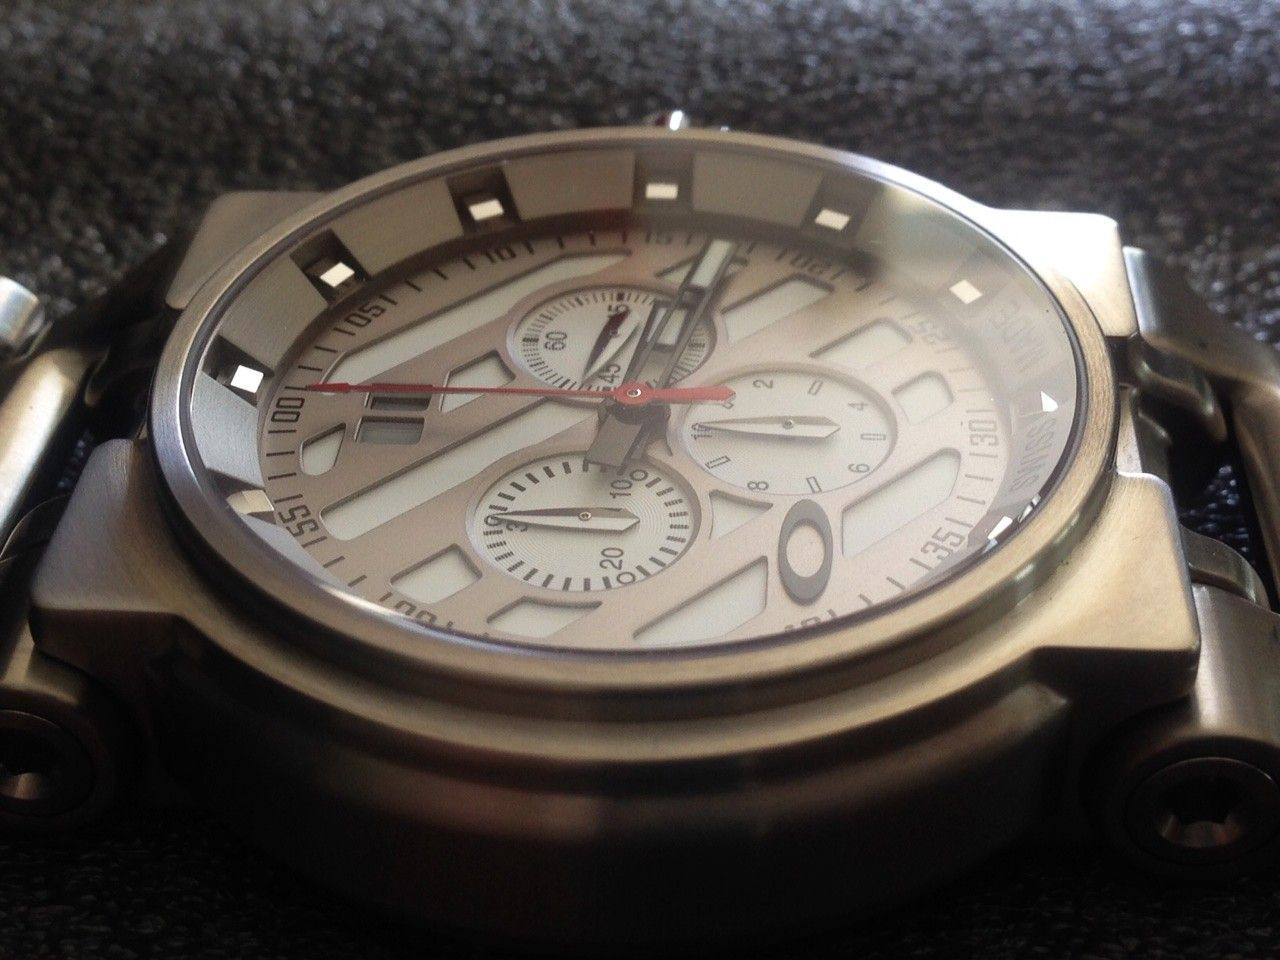 NEW IN BOX Hollow Point Titanium Watch White Dial 10-046 REDUCE PRICE 1,250 or Best Offer - 4.JPG